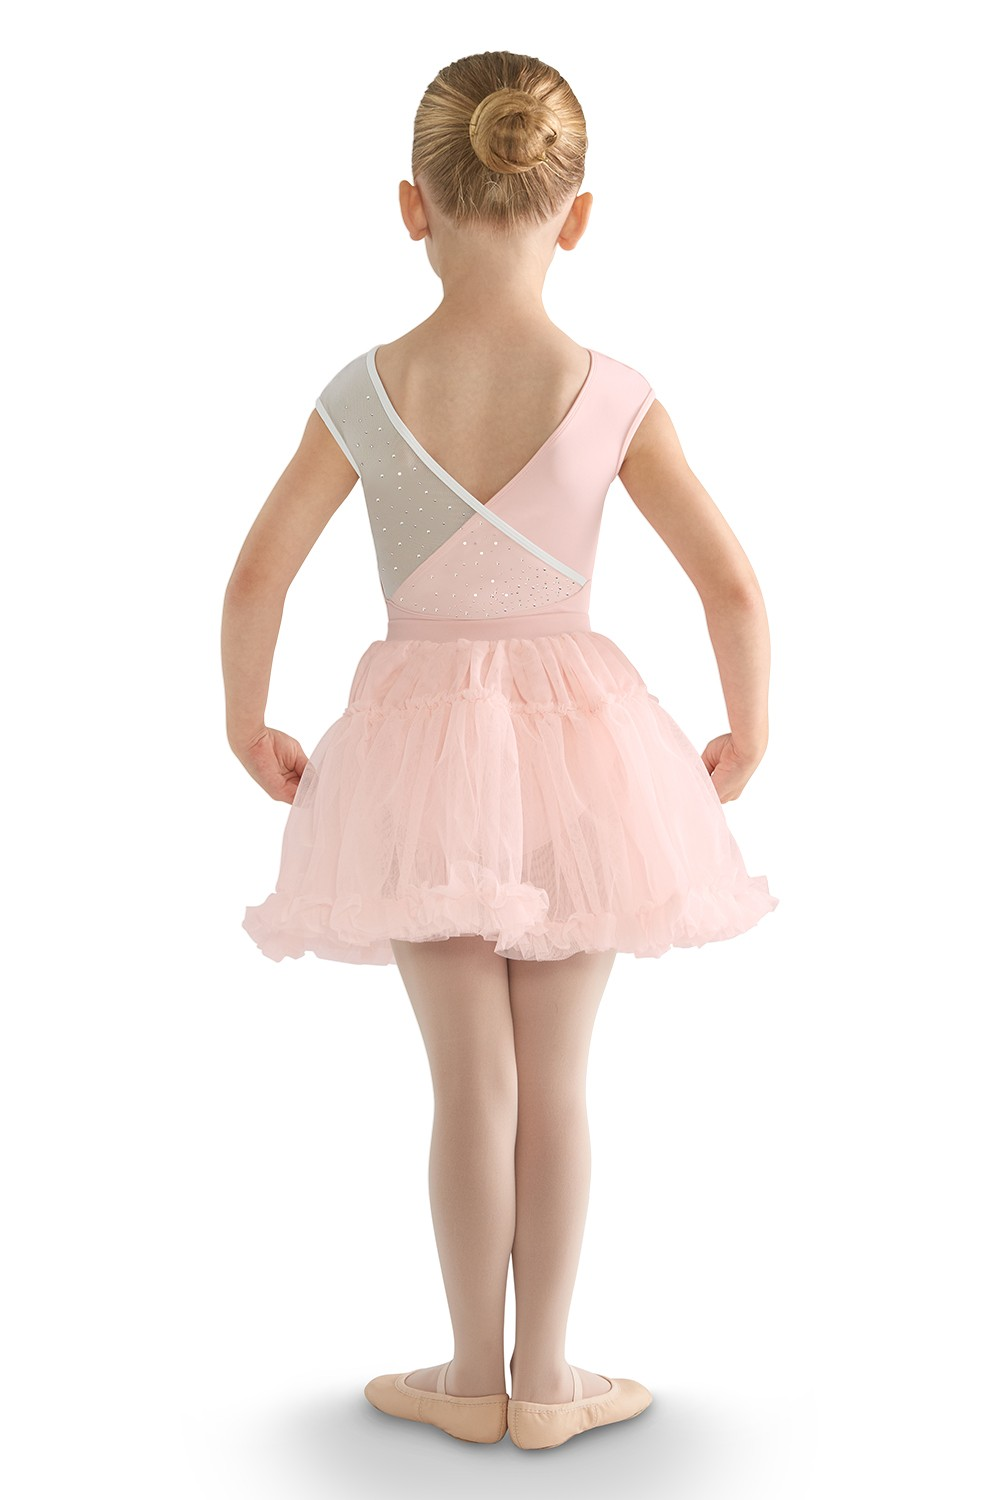 Artegeia Children's Dance Leotards